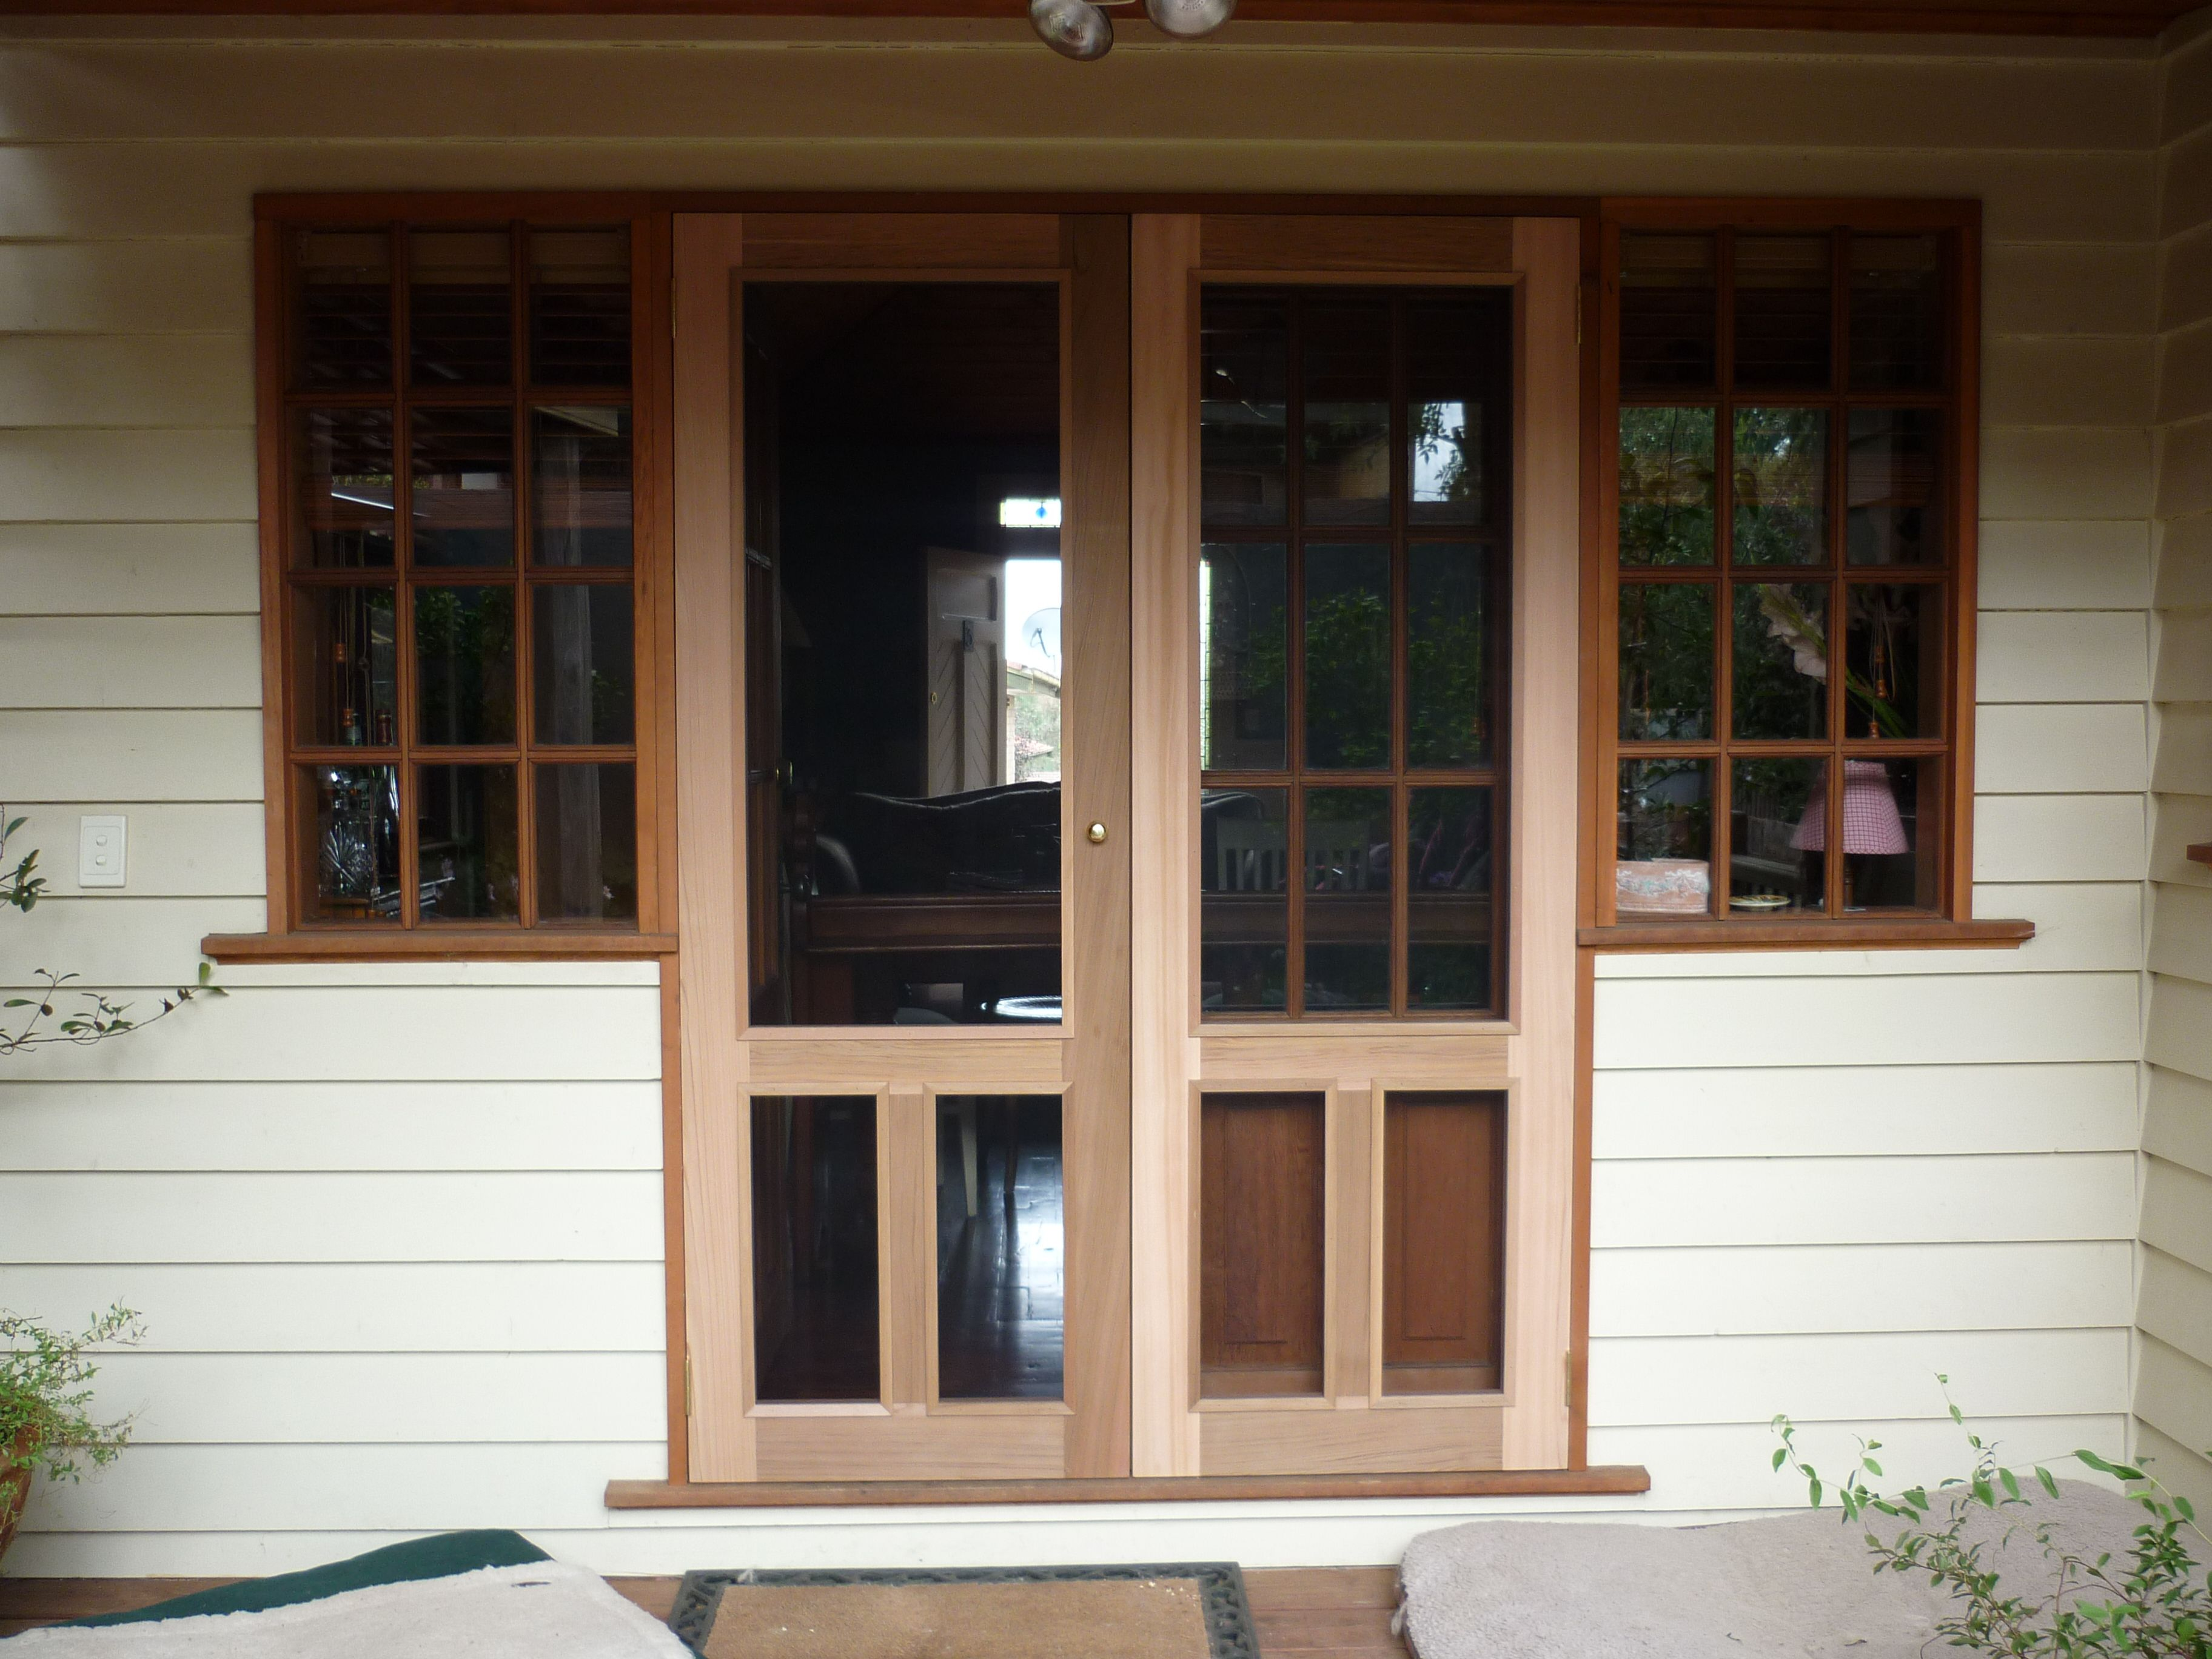 Flyscreen Doors with regard to measurements 3456 X 2304 Wooden Fly Screen Door Designs - The high need for green technology has turned many consumers towar & fly screen to match french doors | New House | Pinterest | Screens ...